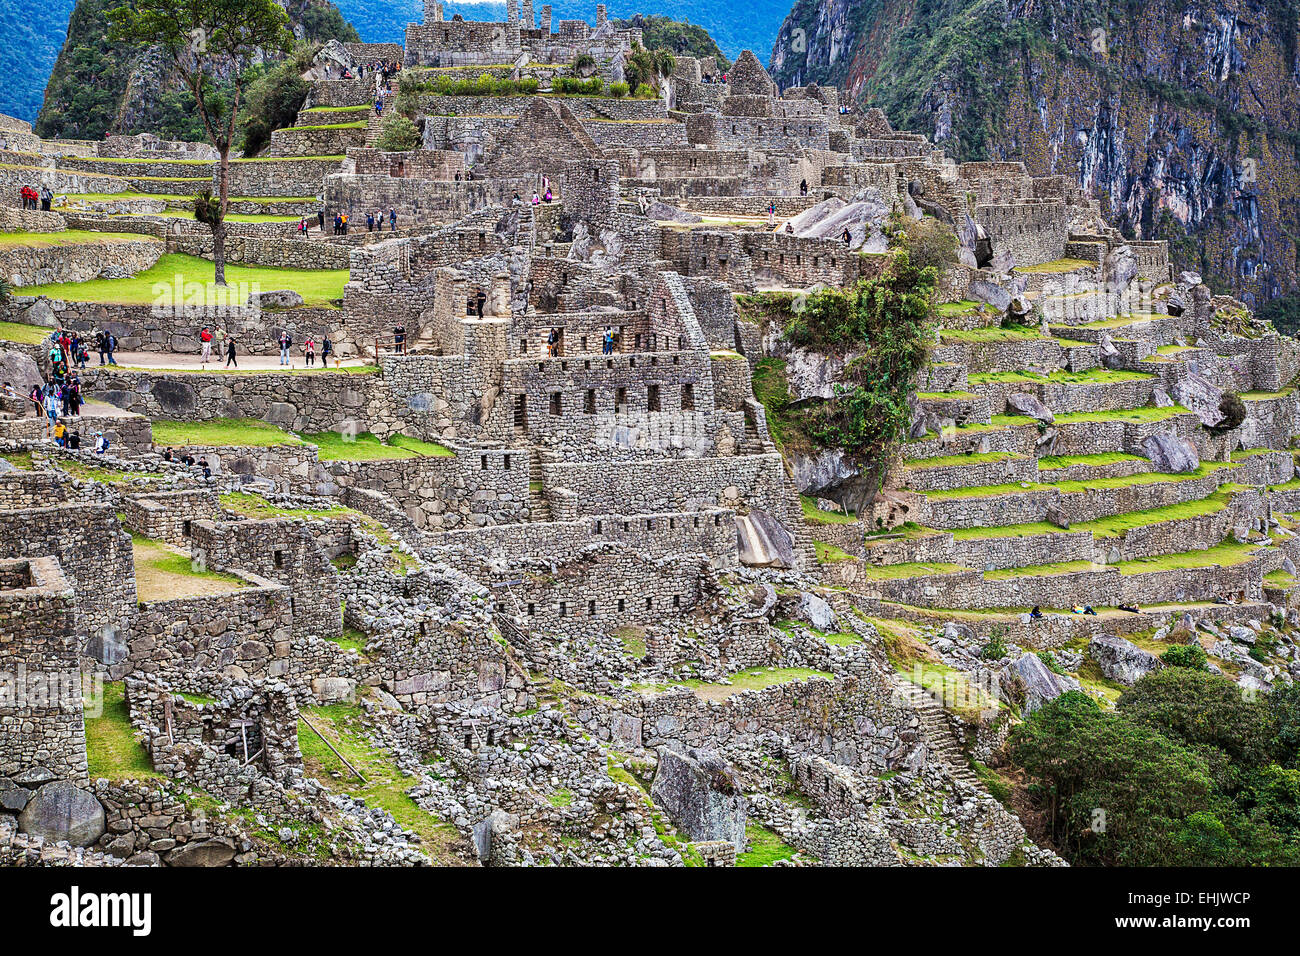 Built as a summer palace for the Inca royal Pachacuti, Machu Picchu is today a major tourist attraction. Stock Photo